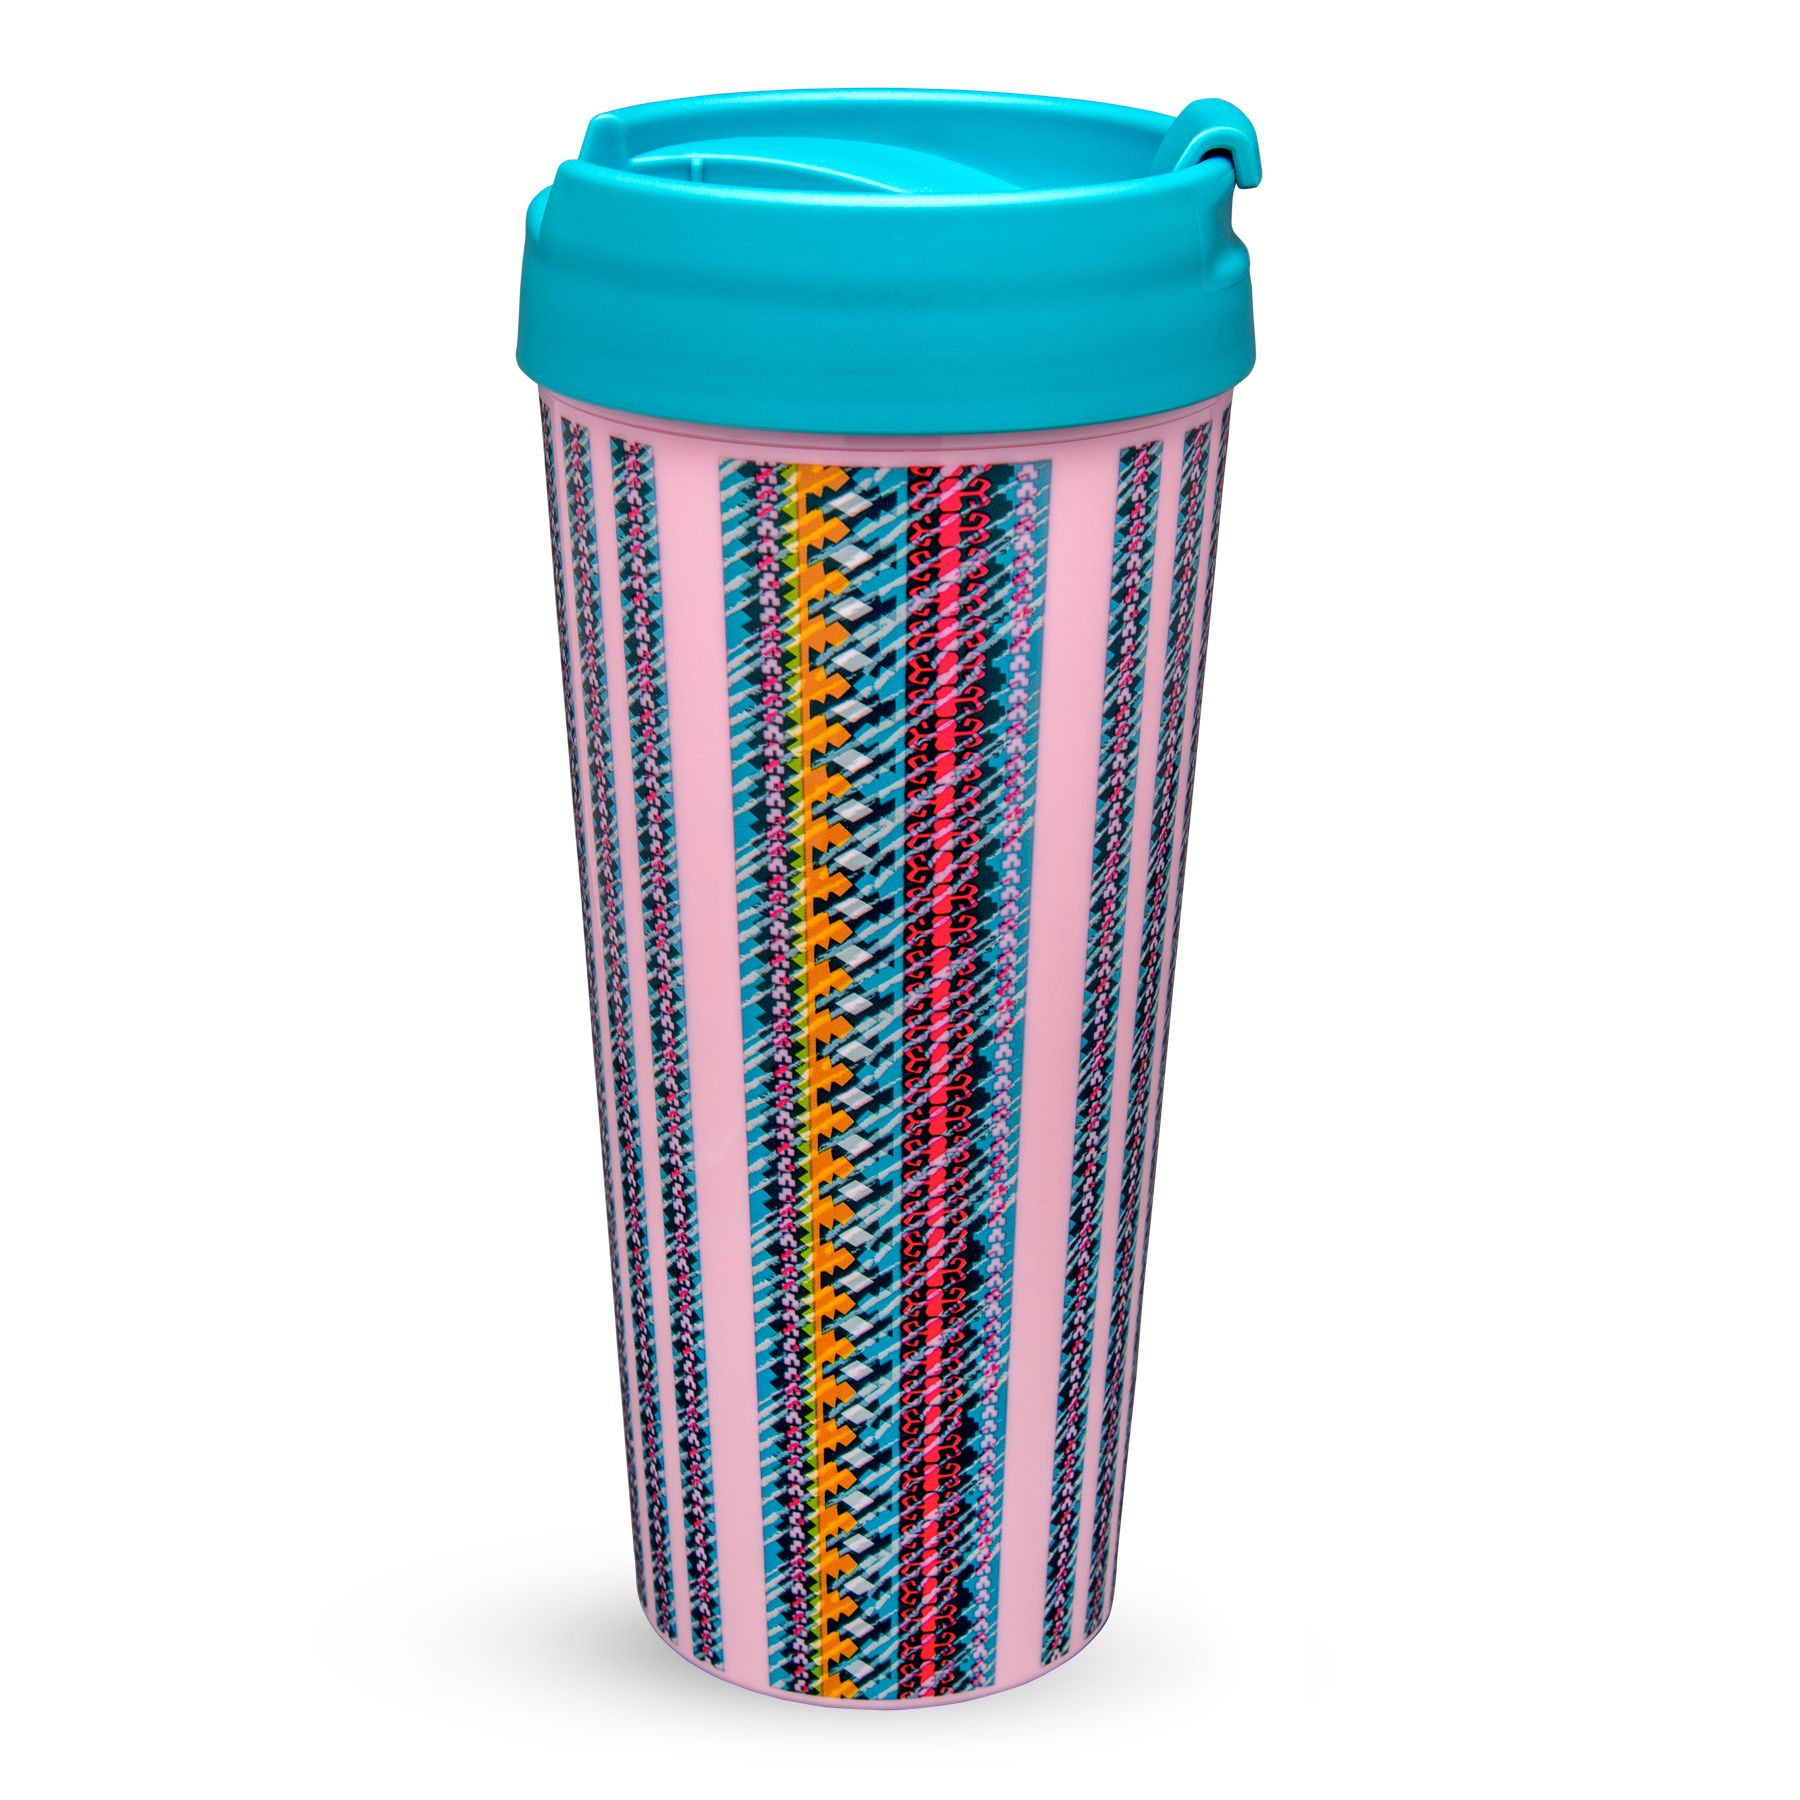 Vera Bradley Travel Mug Reviews